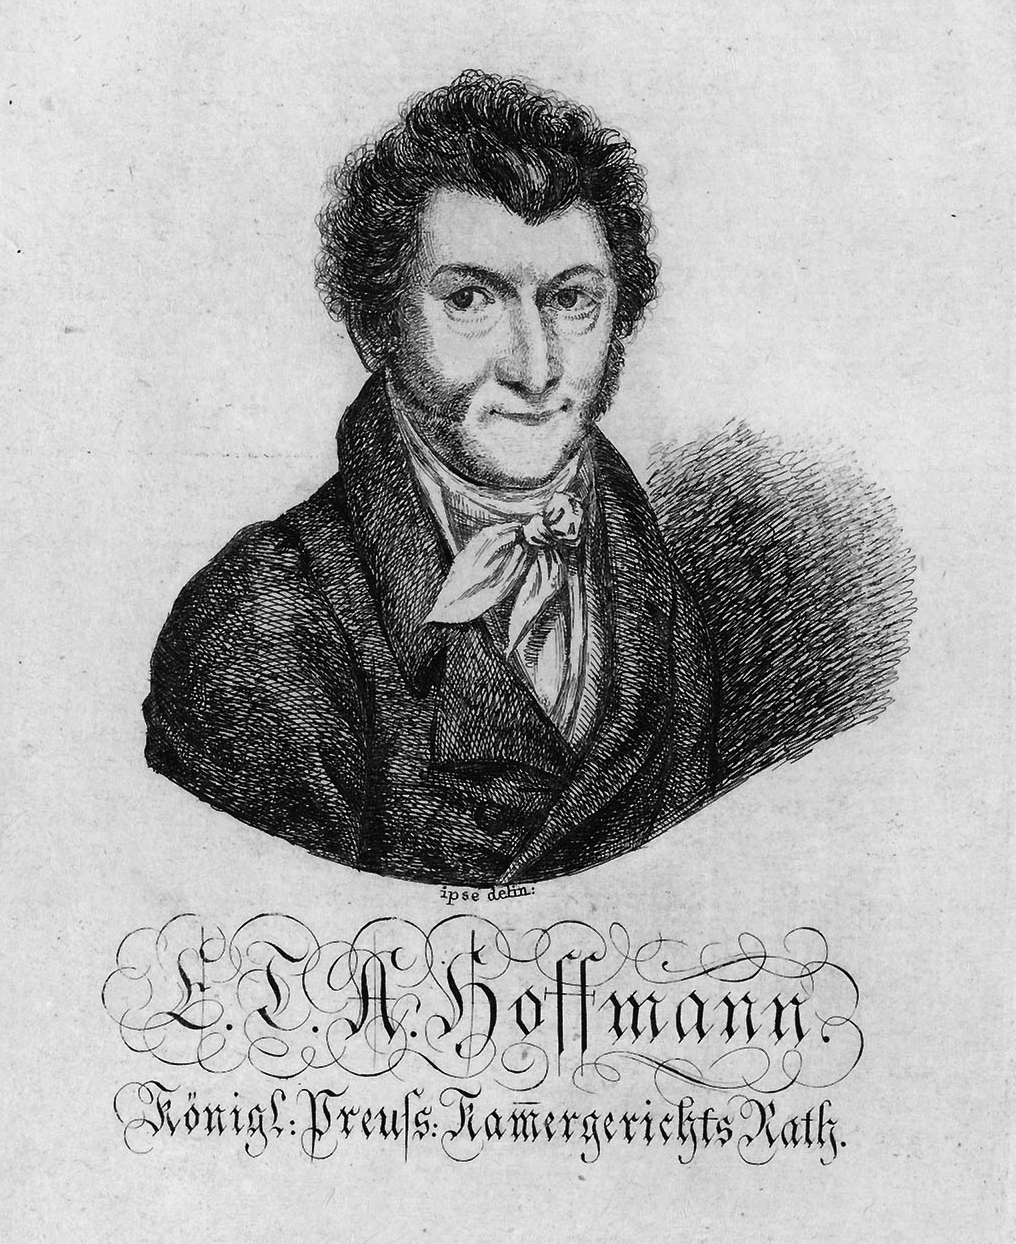 E. T. A. Hoffmann [Public domain], via Wikimedia Commons